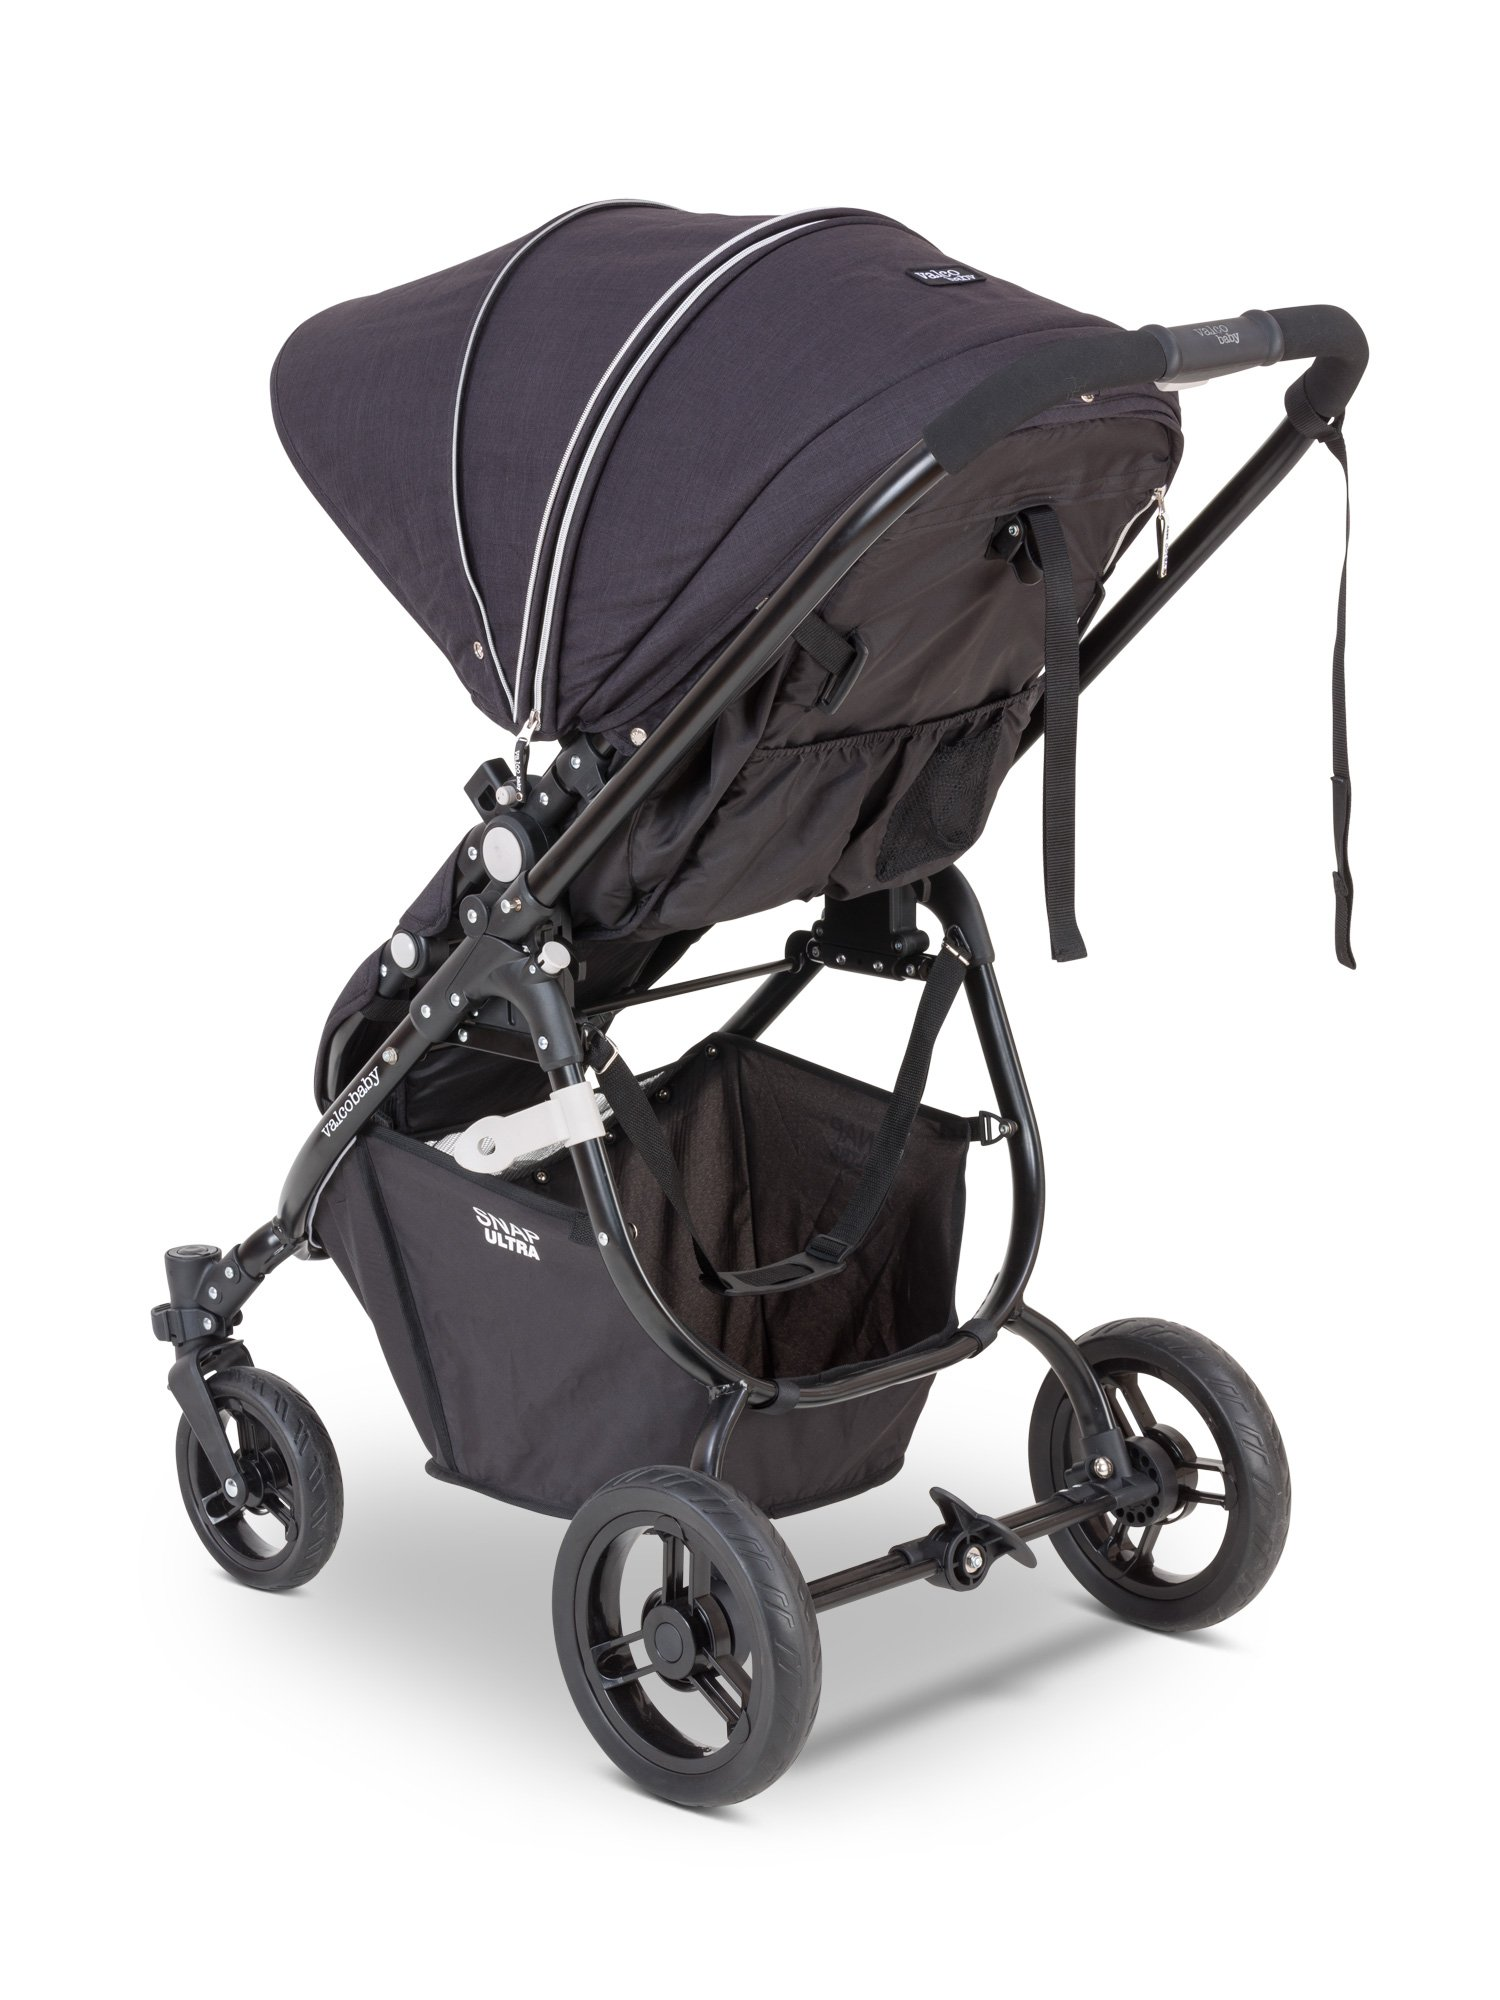 Valco Baby Snap Ultra Lightweight Reversible Stroller (Black Night) by Valco Baby (Image #4)